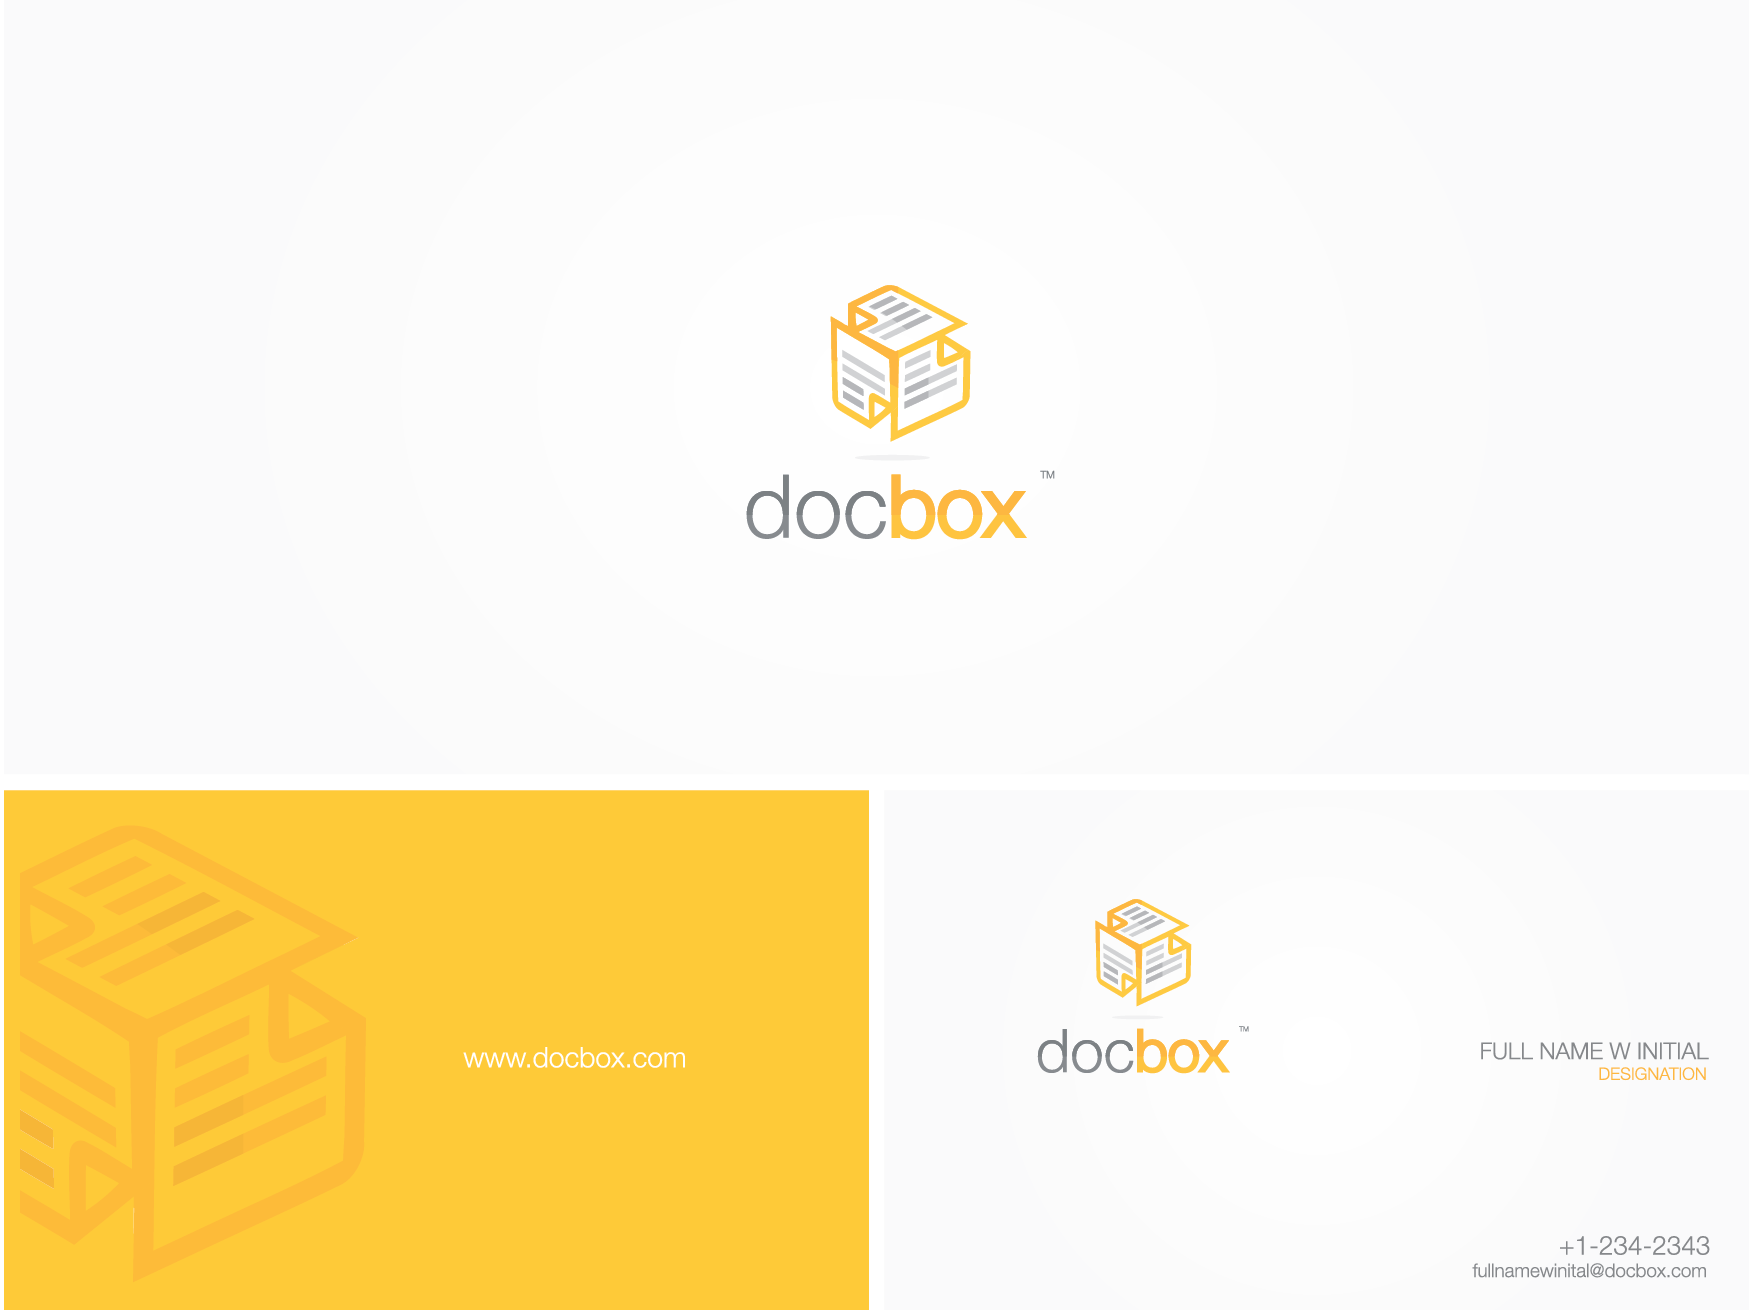 logo and business card doc box 99designs